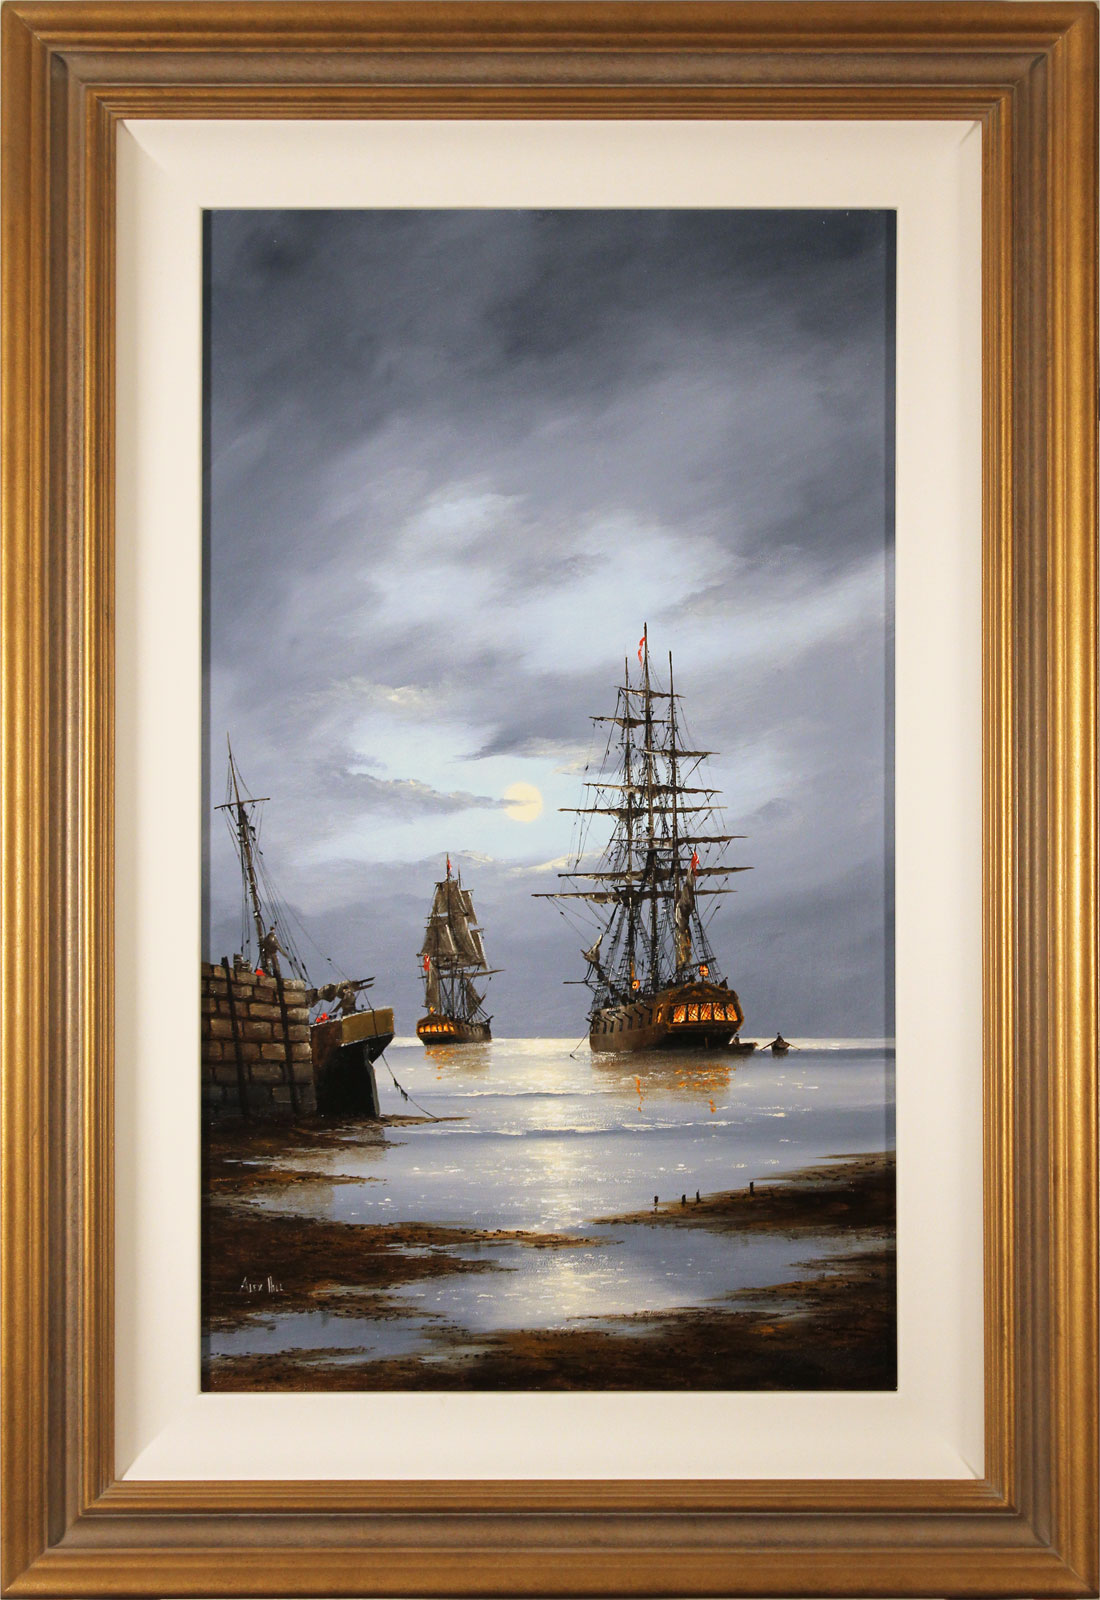 Alex Hill, Original oil painting on panel, Leaving Harbour Click to enlarge